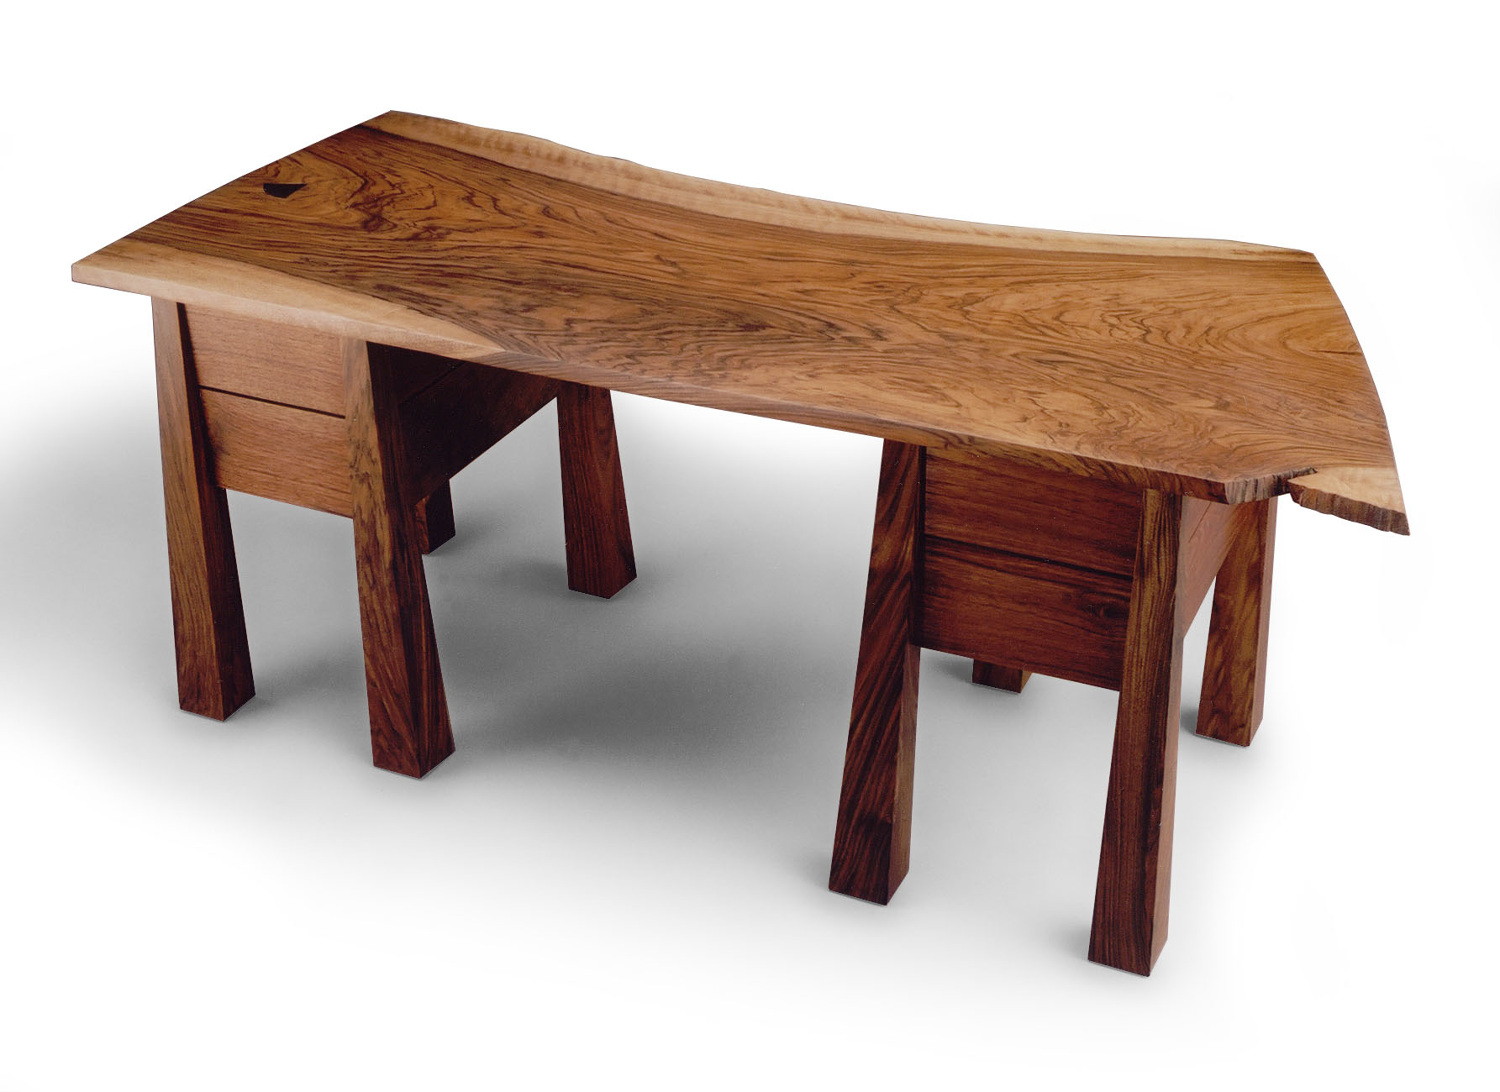 Japanese tea table furniture - Built Specifically For Japanese Tea Ceremony This Table Has Sliding Shelves That Pull Out To Support Tea Bowls The Top Is Made Of Locally Salvaged English